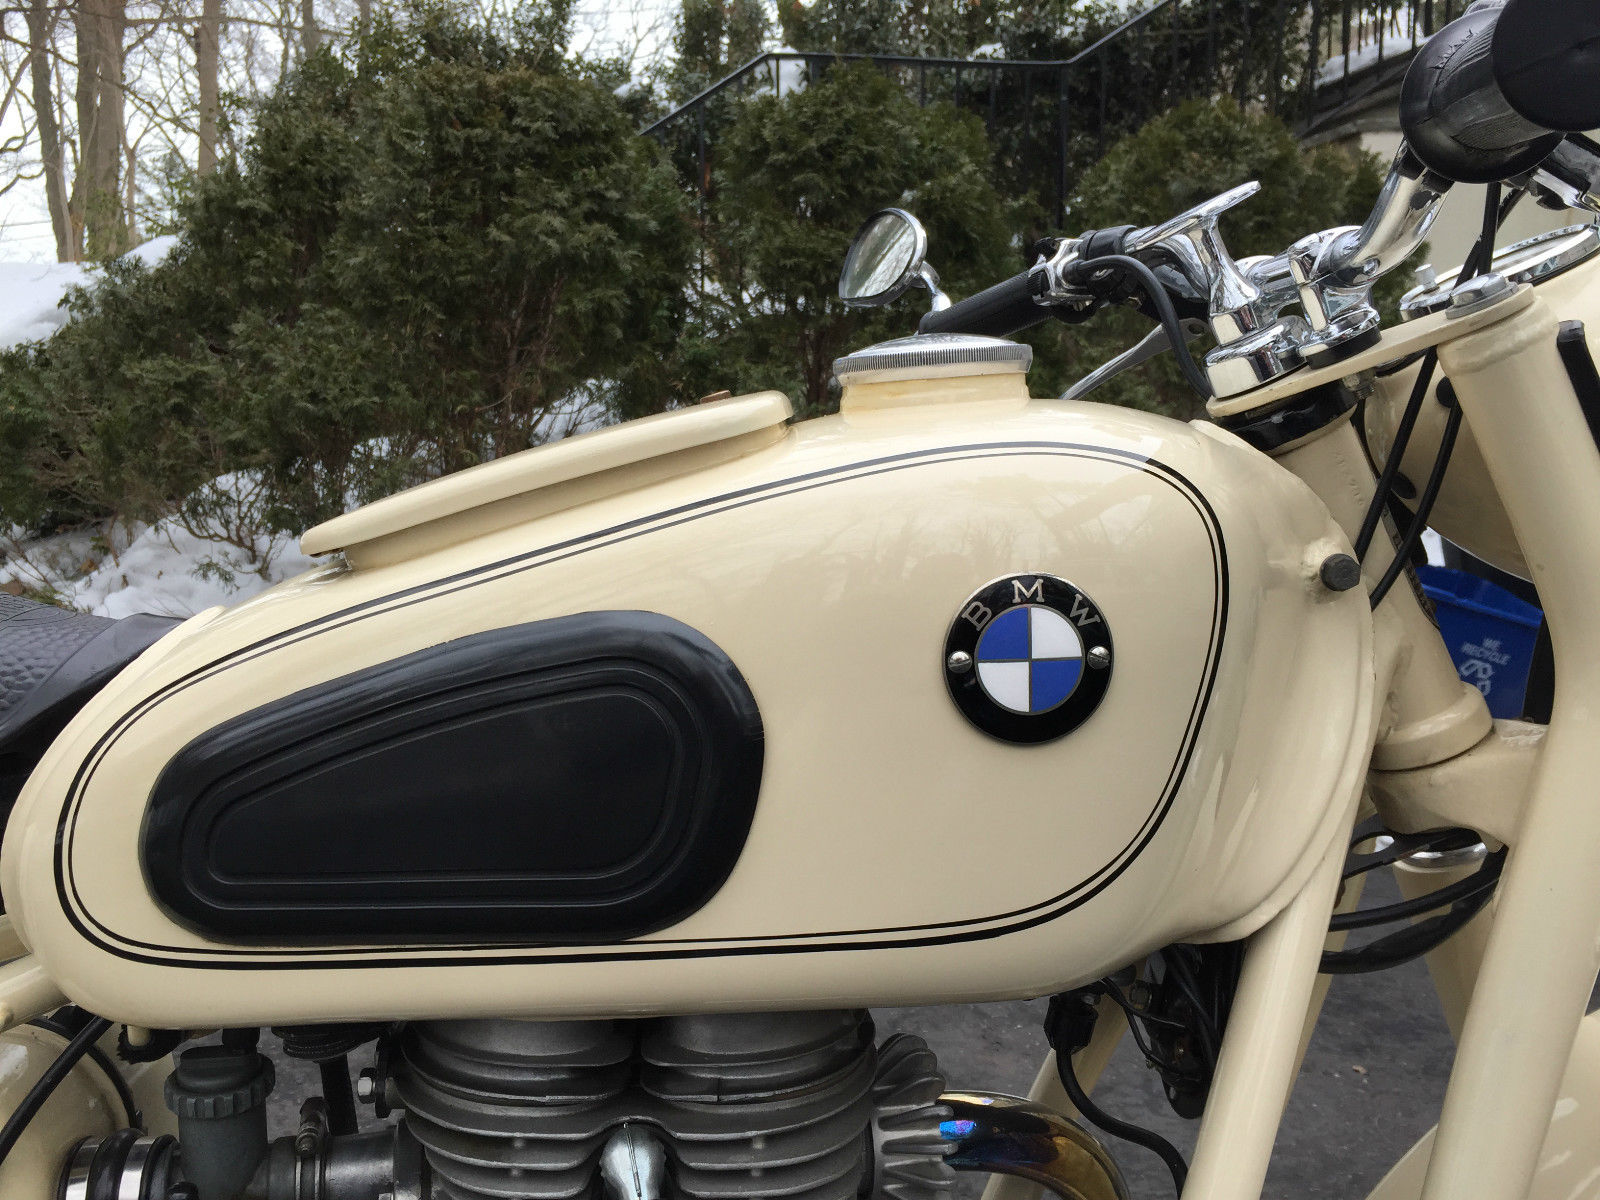 Restored Bmw R27 1965 Photographs At Classic Bikes